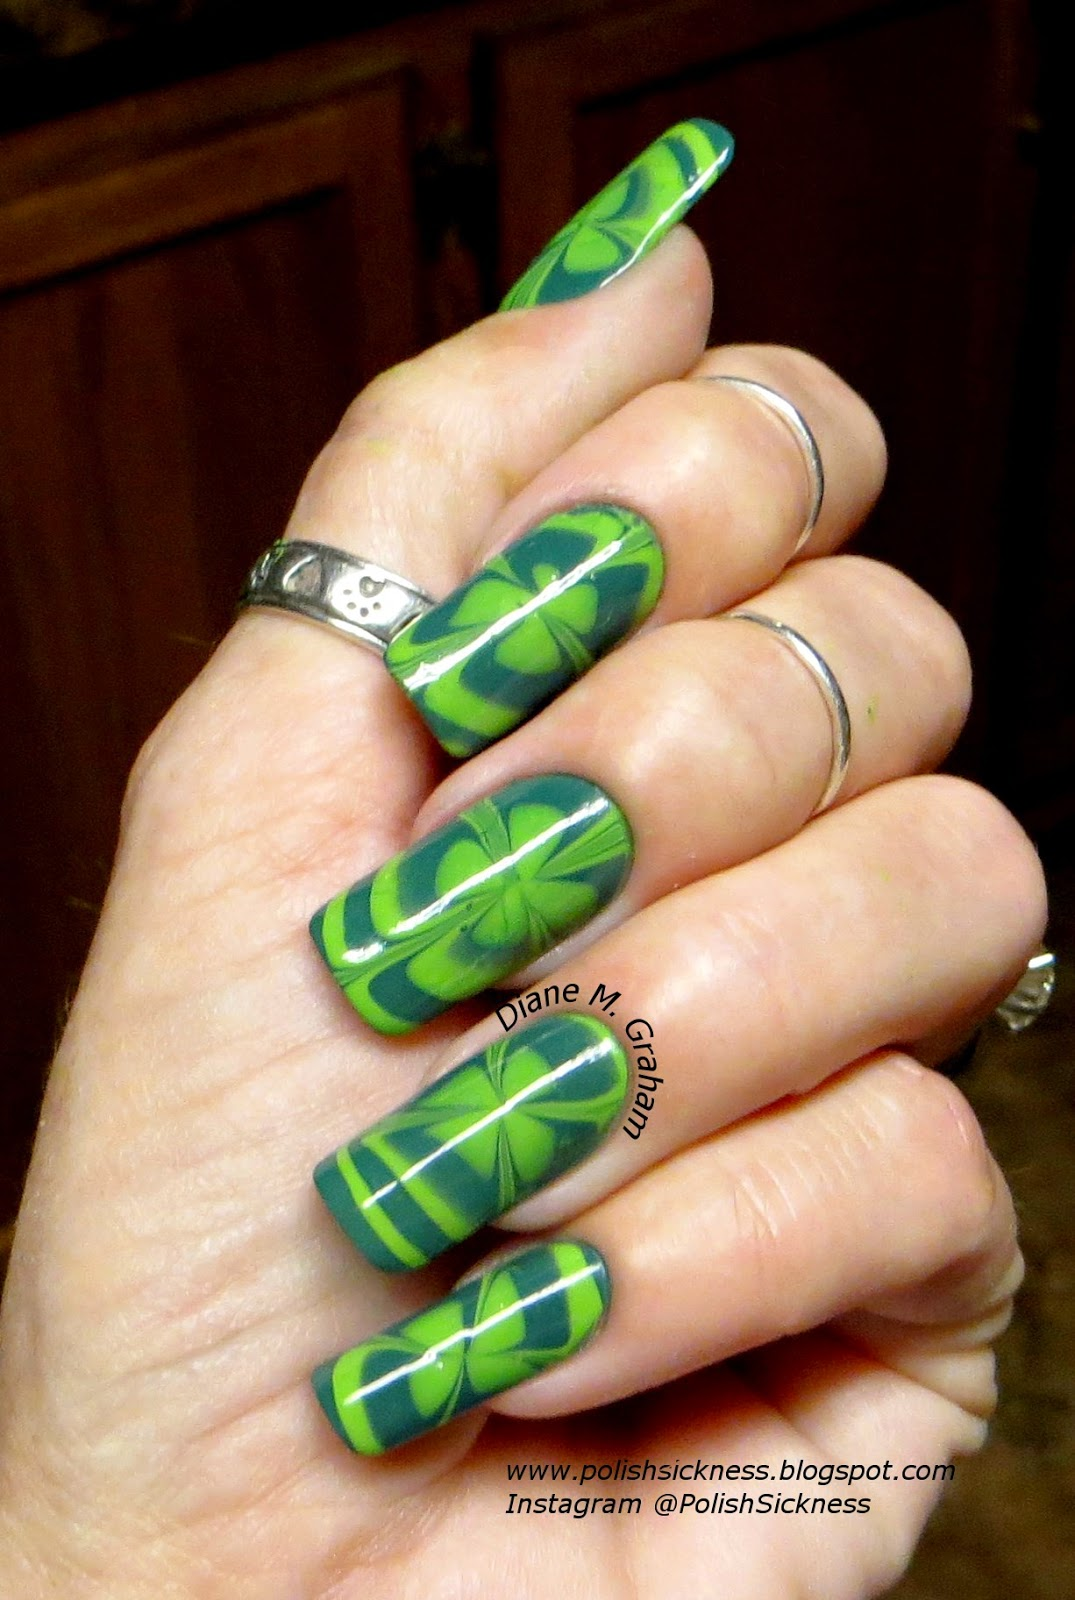 China Glaze Exotic Encounters, Square Hue Flower Power, St. Patrick's Day, shamrock, clover, water marble